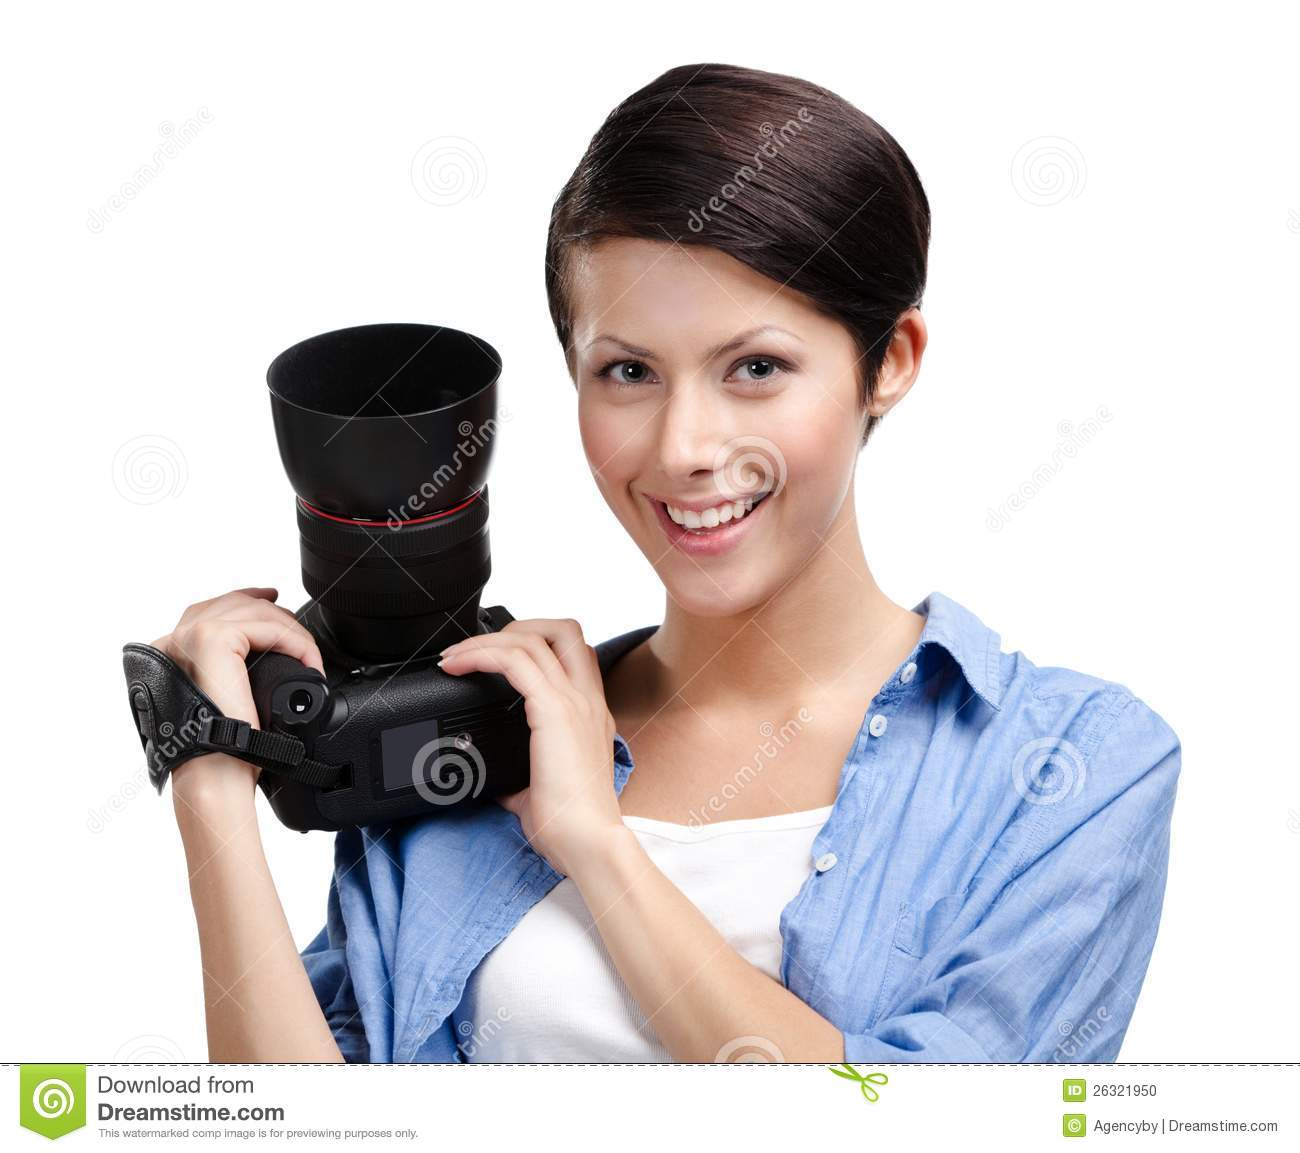 what it takes to be a photographer What it really takes to become a professional photographer you need more than creativity to become a great photographer benjamin williamson knows the perfect balance and tools you need to be successful.